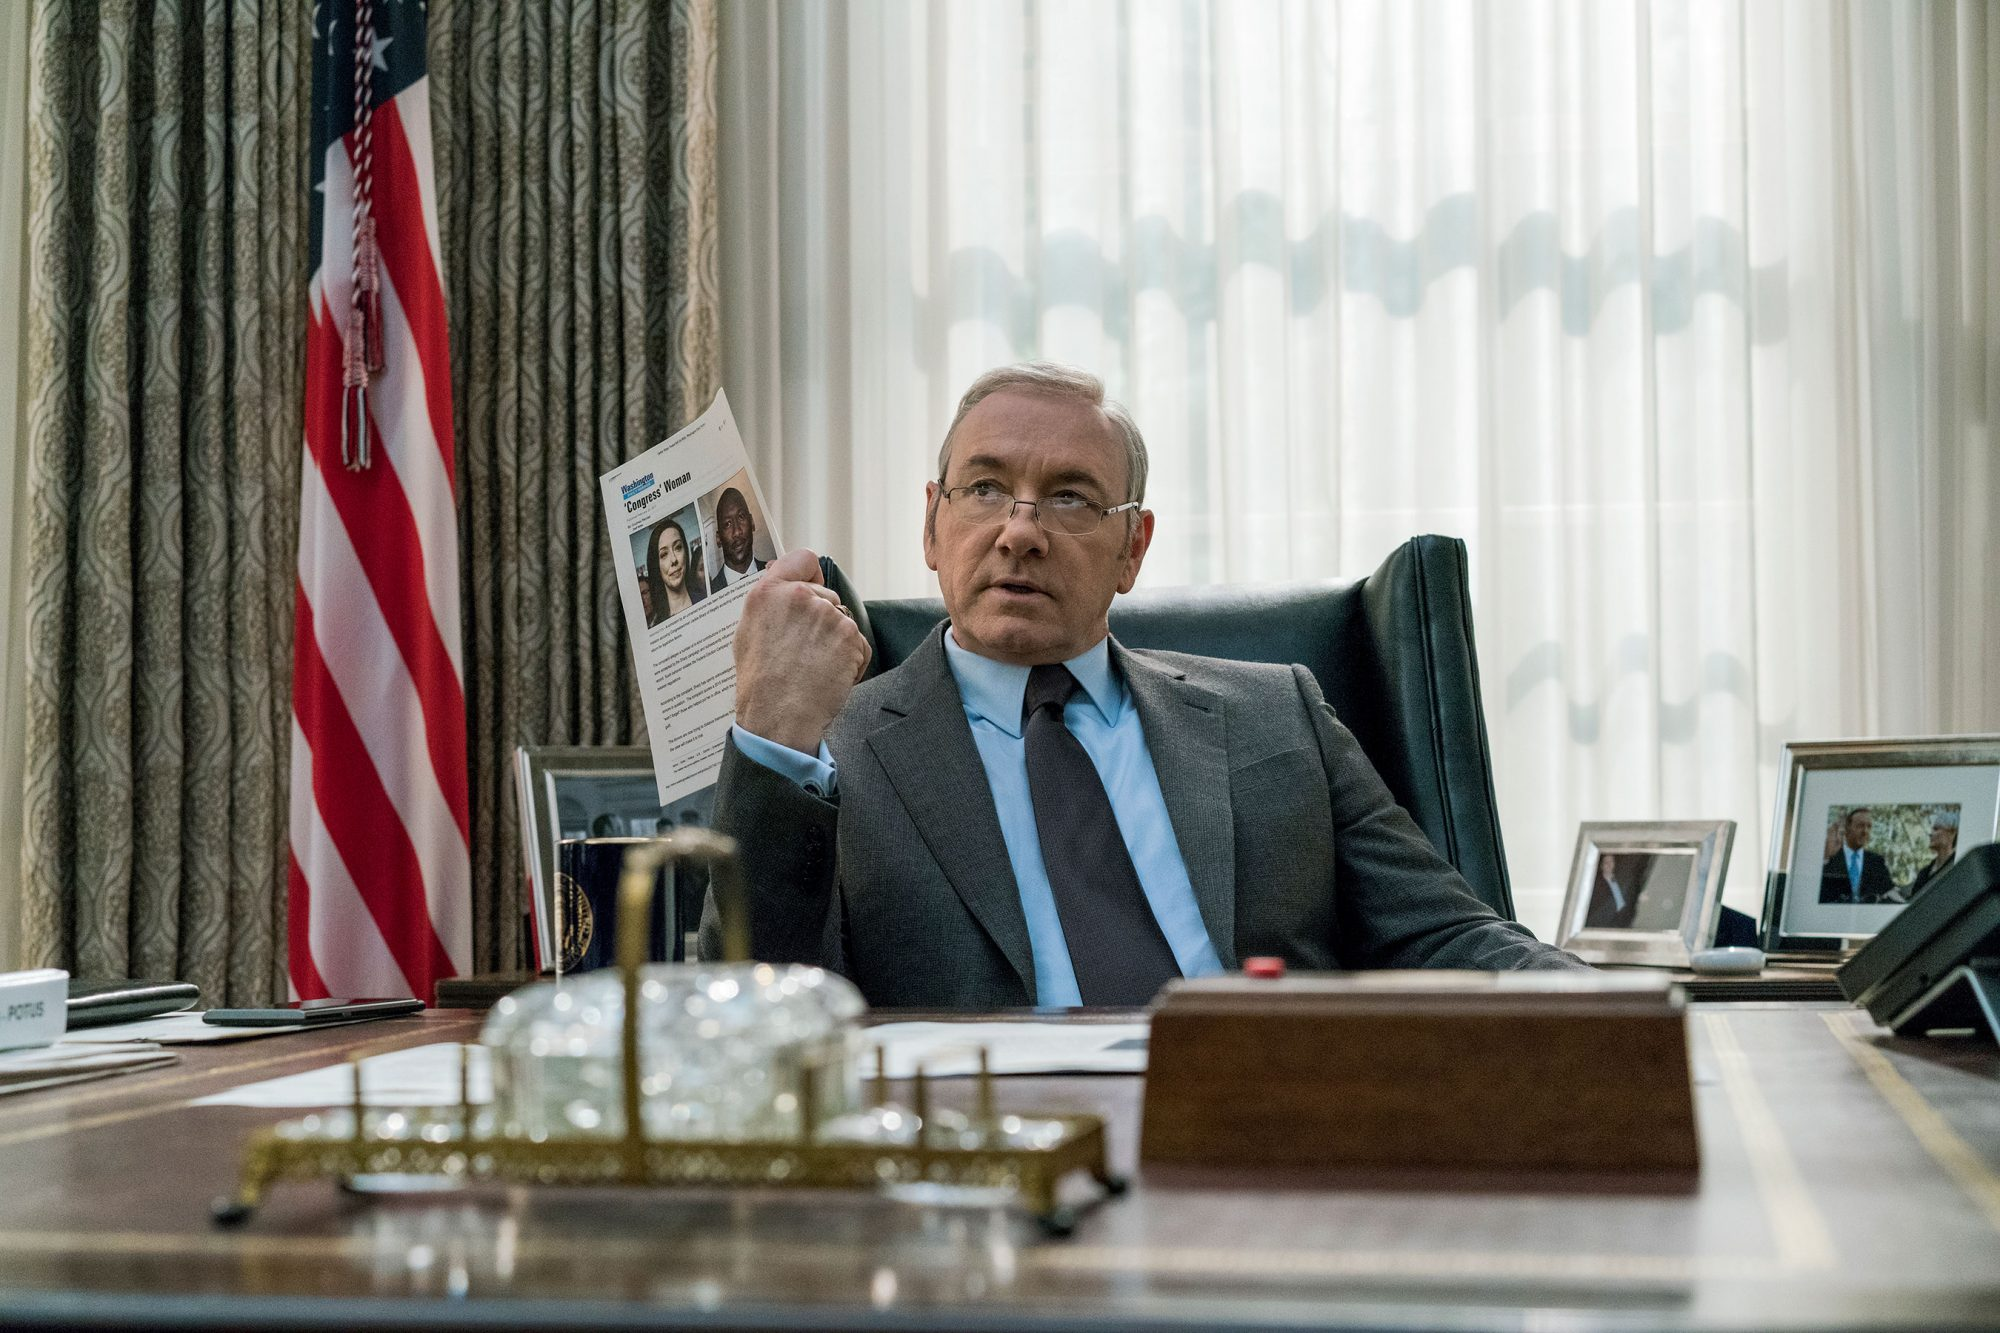 RECAP: House of Cards Season 5, Ep.10